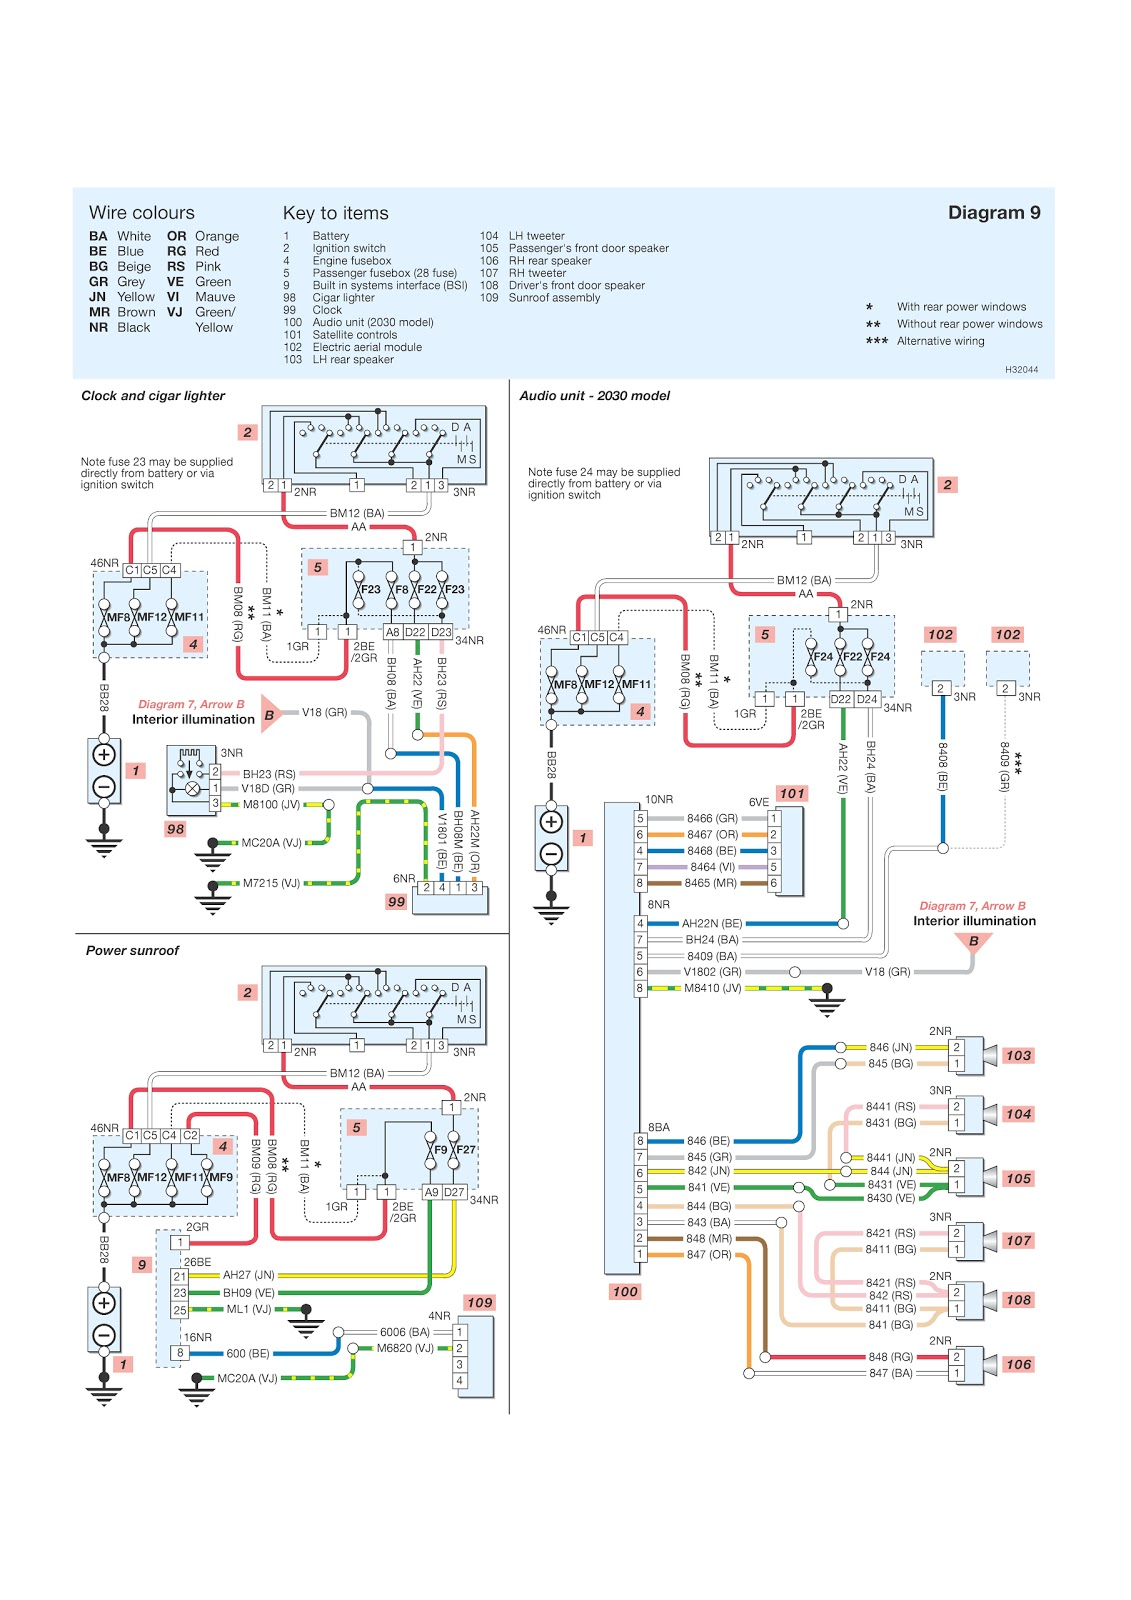 Peugeot 206 System Wiring Diagrams Clock, Cigar Lighter, Sunroof, Audio System | Schematic